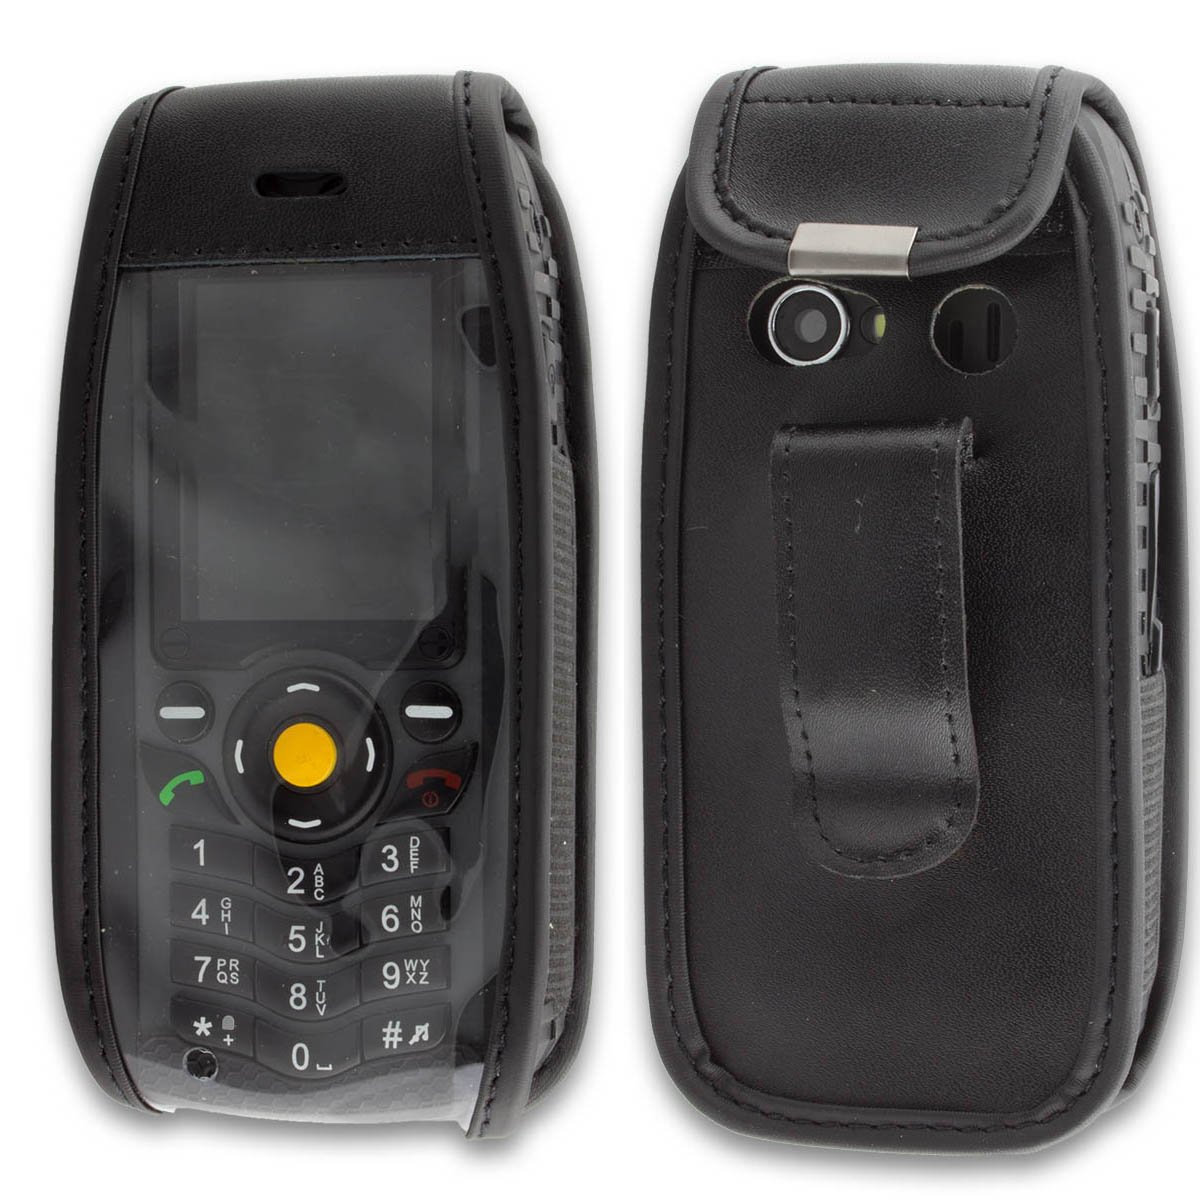 Jcb tradesman 2 tough mobile phone onedirect co uk - Caseroxx Leather Case With Belt Clip For Cat B25 Made Of Real Leather With Belt